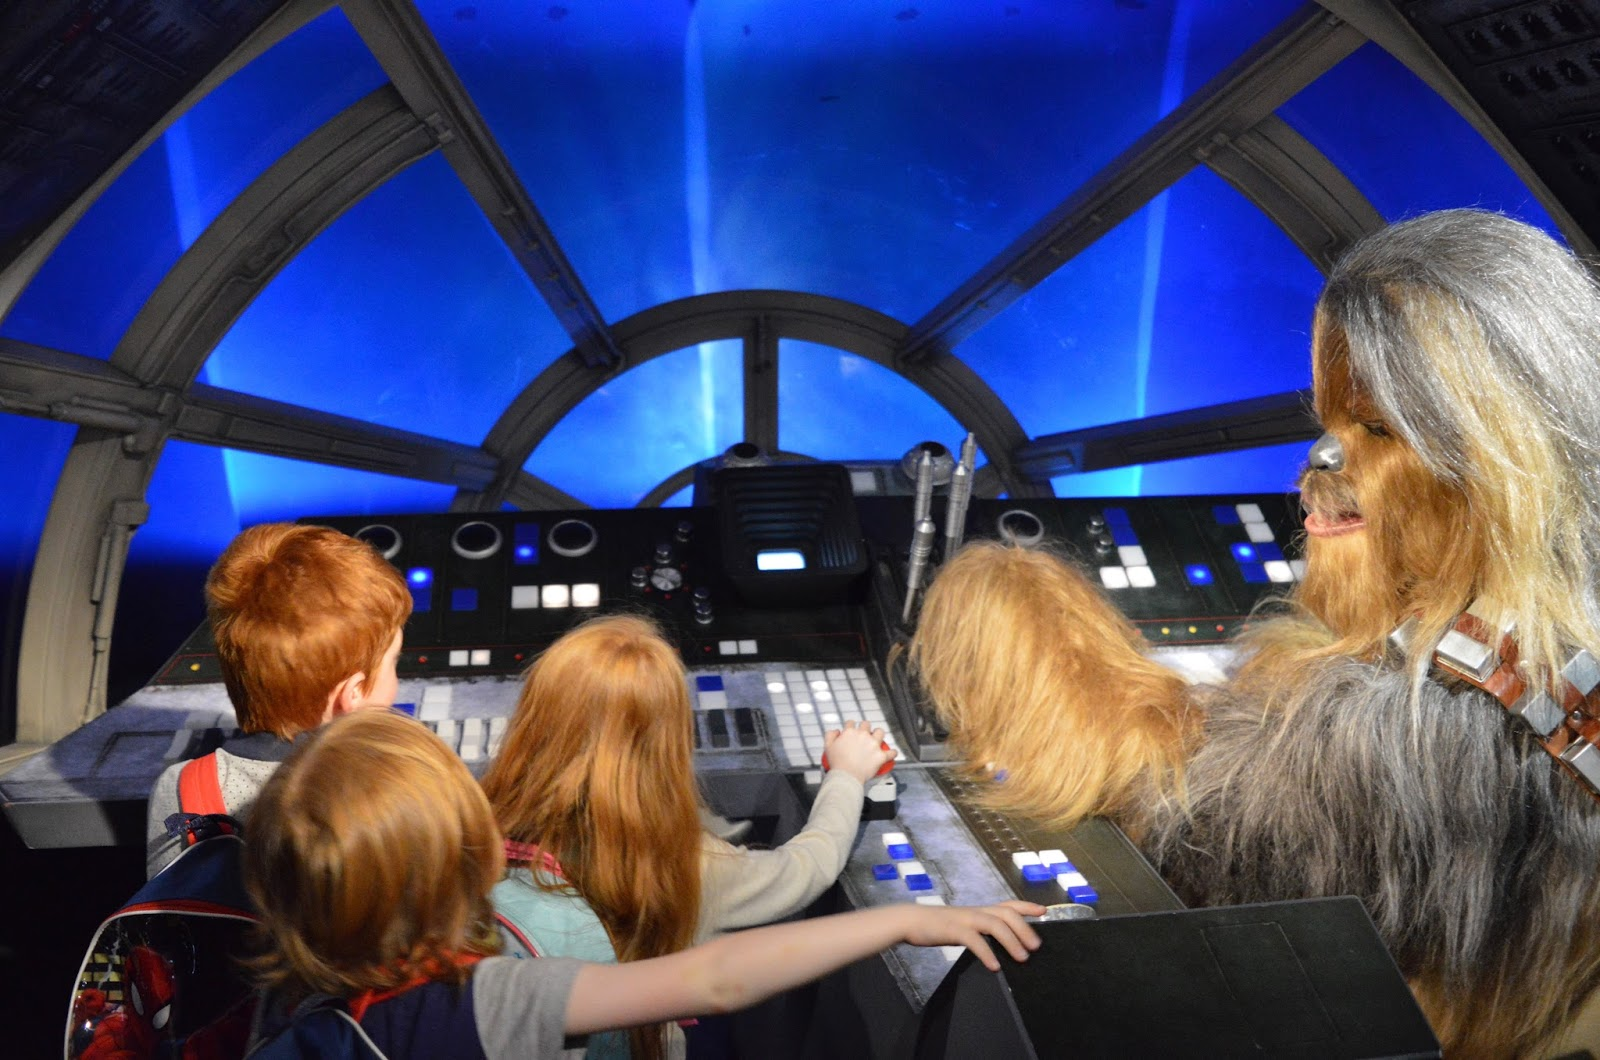 A family day trip to London with Virgin Trains East Coast - Madame Tussauds Millennium Falcon and Chewbacca